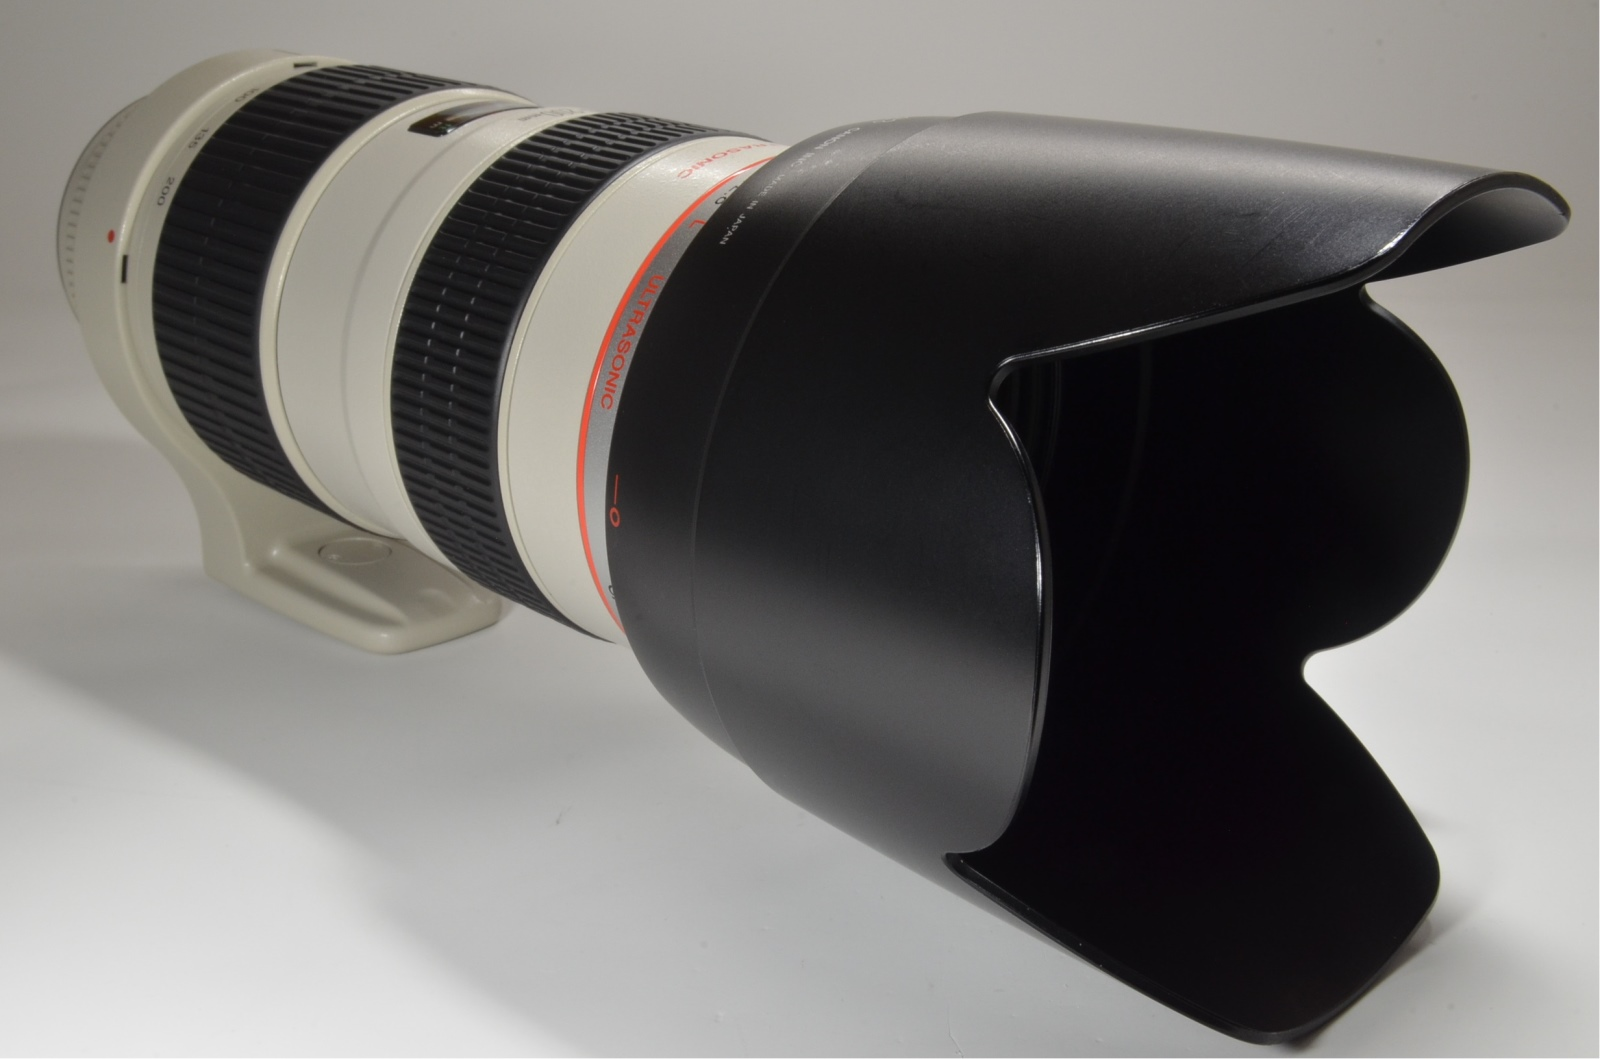 canon ef 70-200mm f/2.8 l usm ultrasonic lens from japan